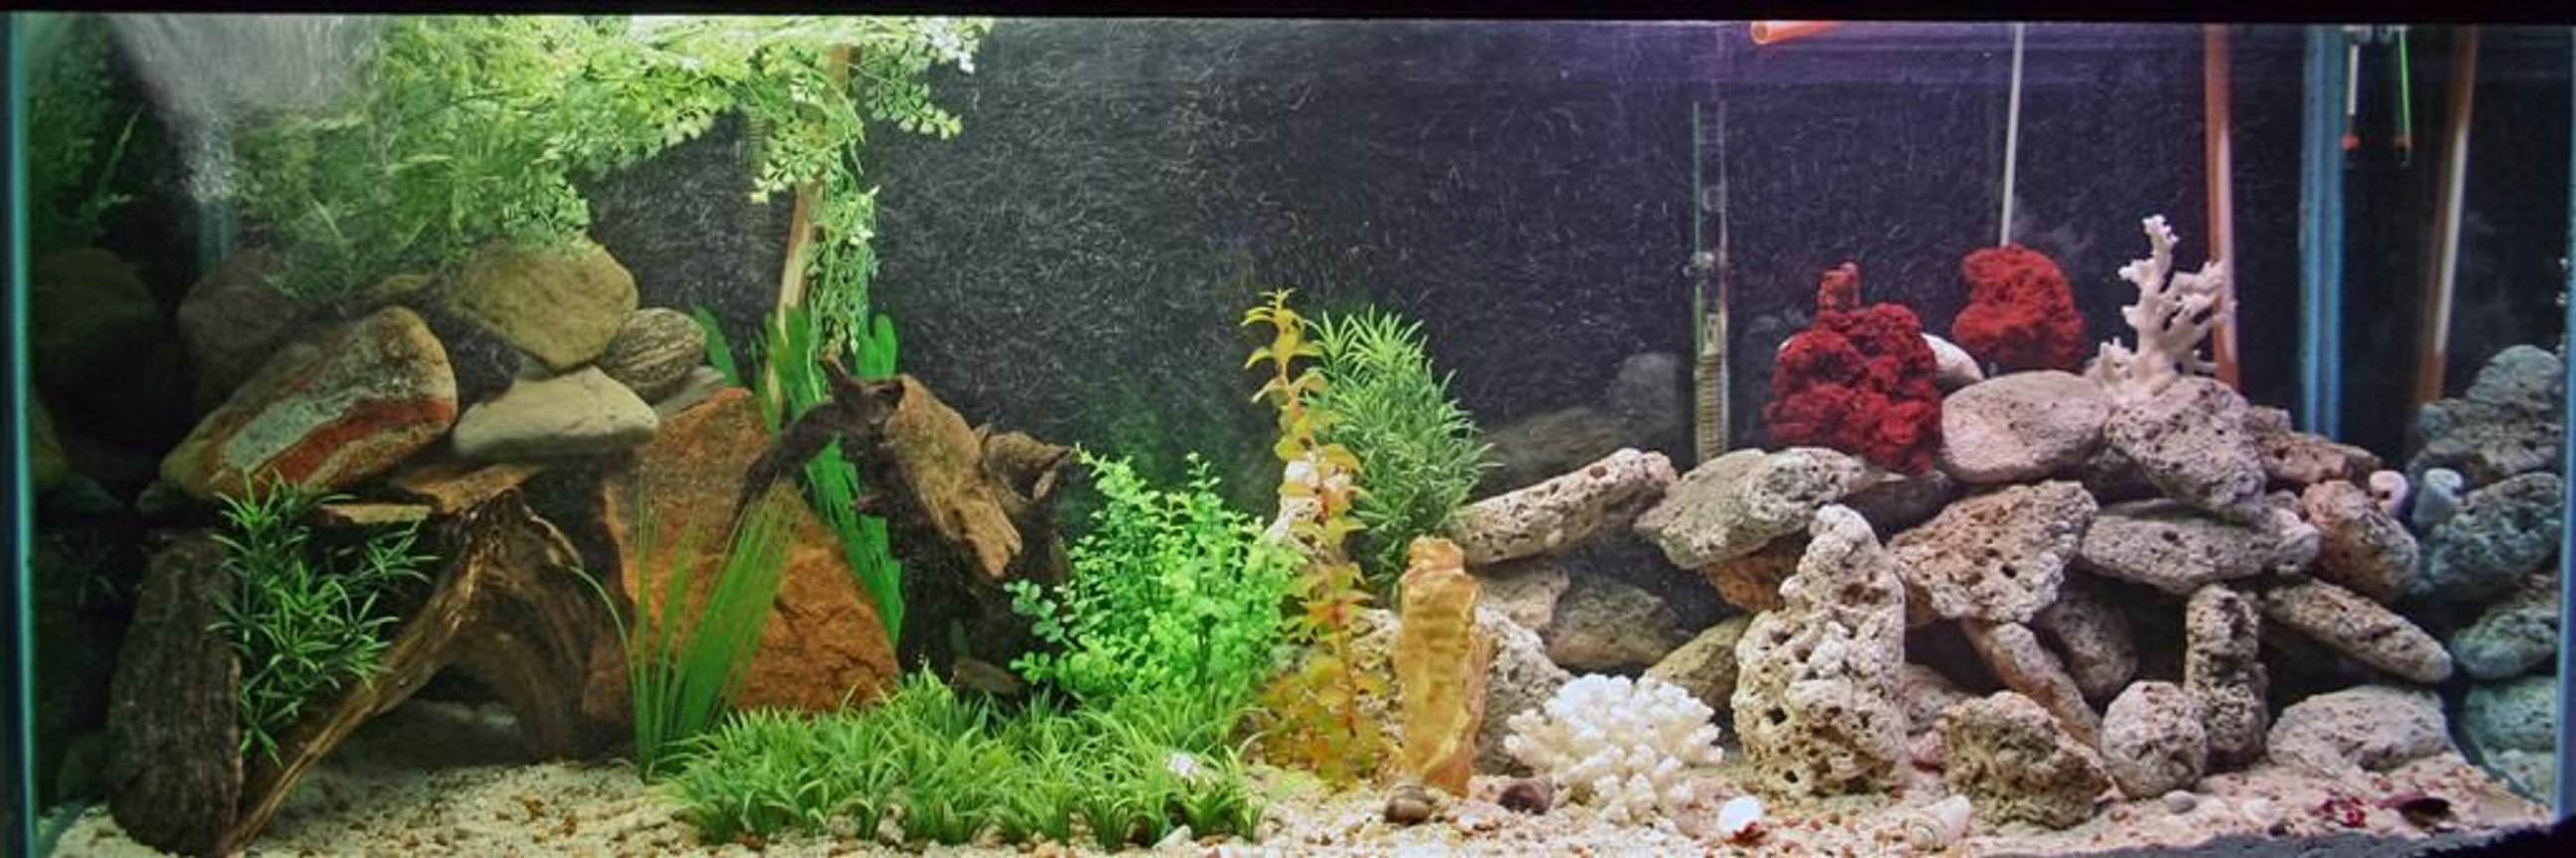 110 gallons freshwater fish tank (mostly fish and non-living decorations) - my new 110 gallon